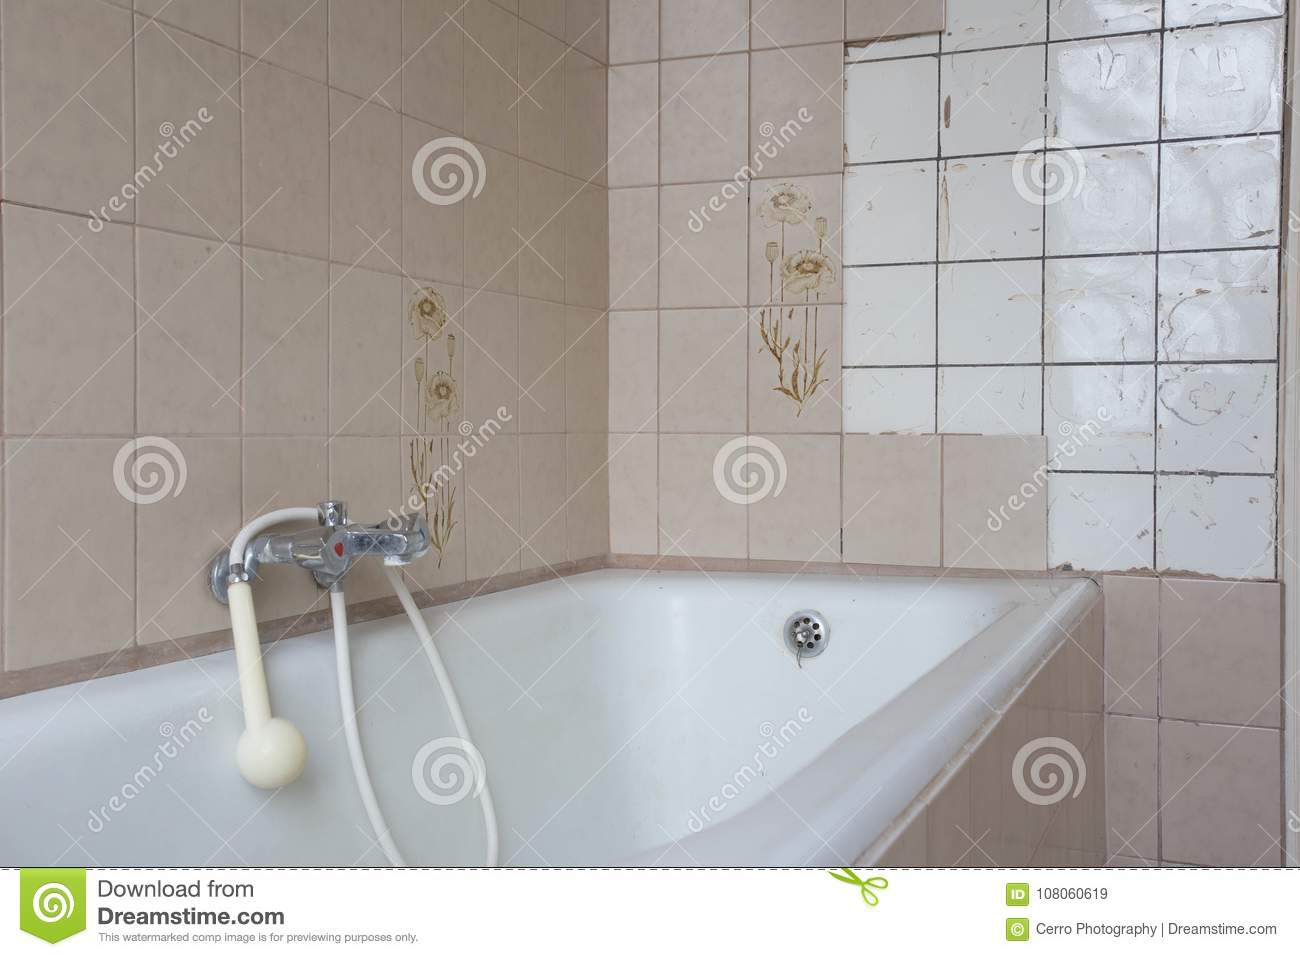 Old Bath Tub With Dirty Tiles In Bathroom Stock Image - Image of ...